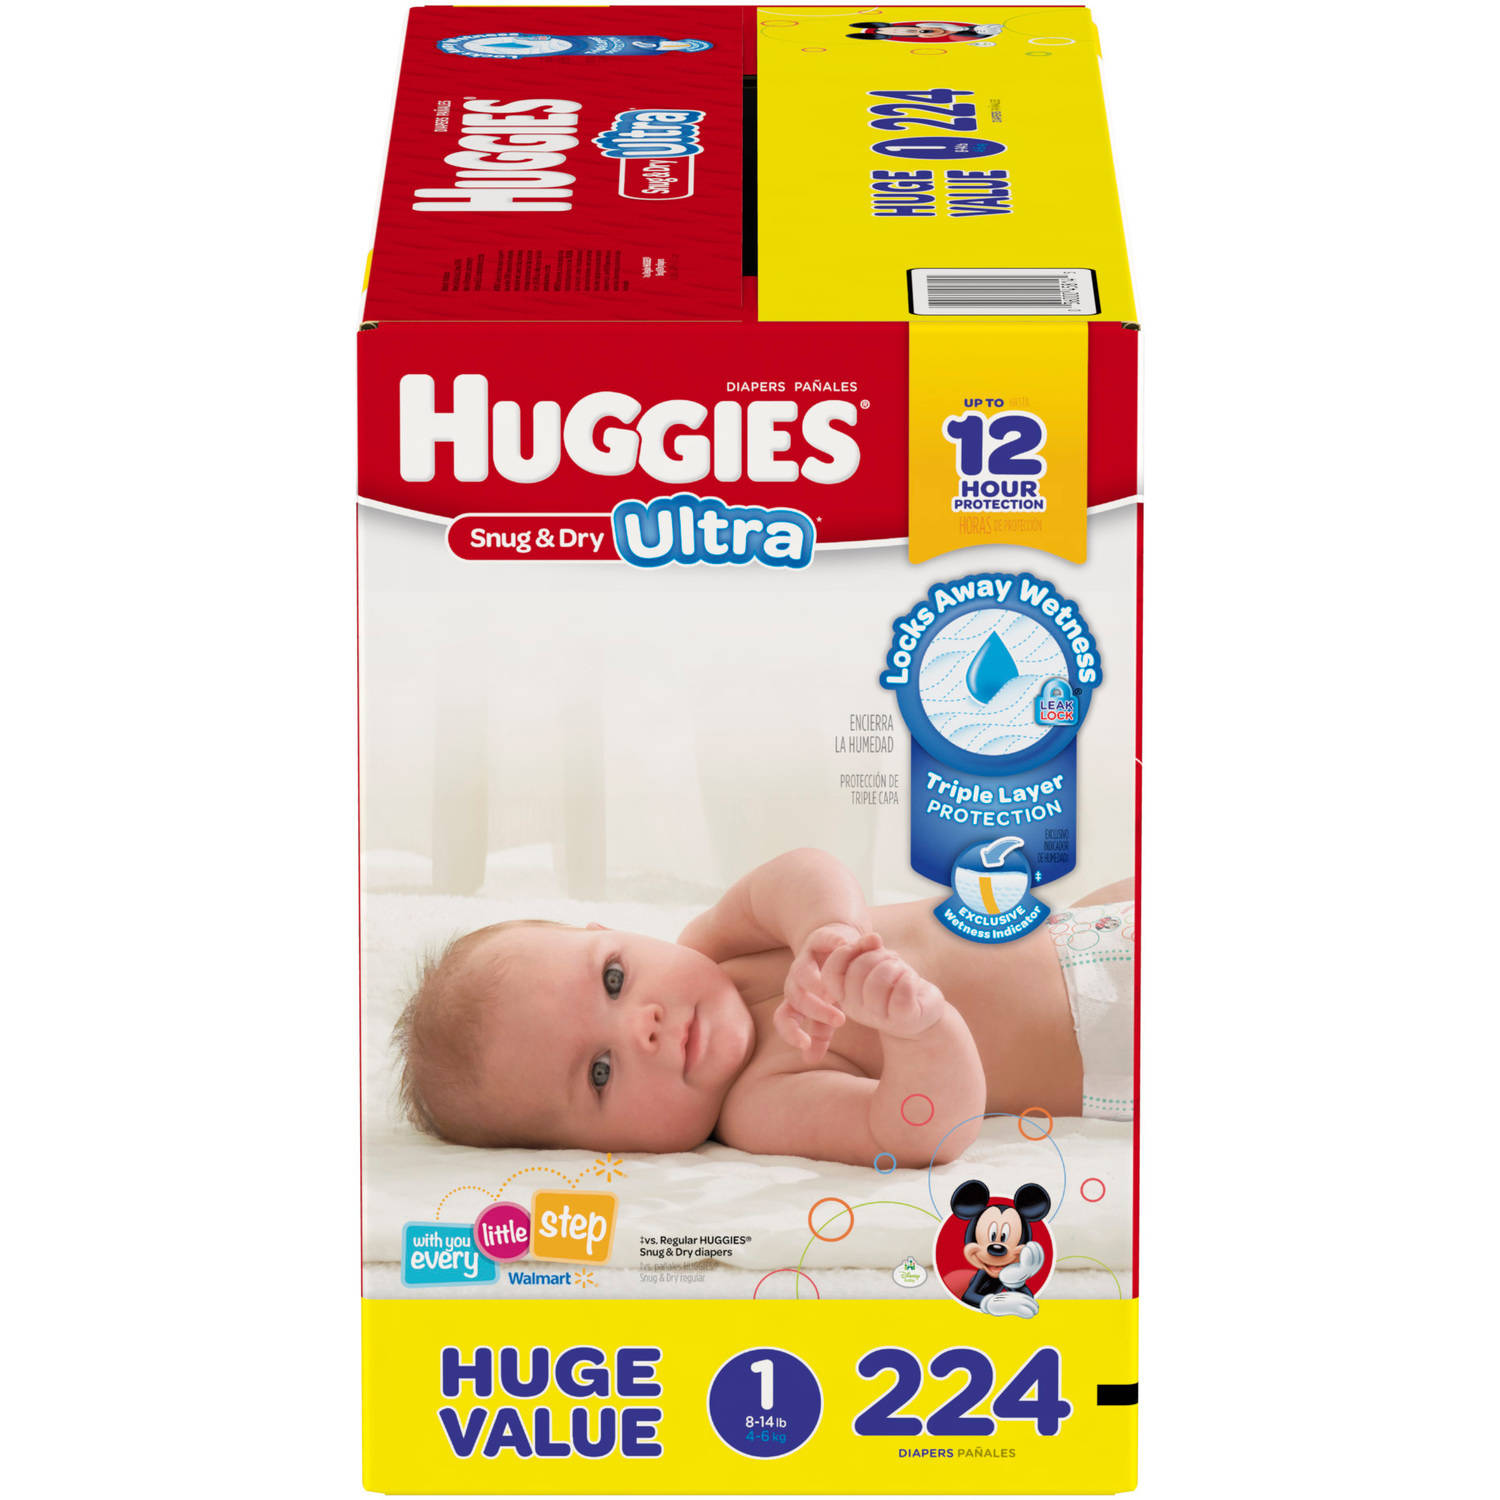 HUGGIES Snug & Dry Ultra Diapers Huge Pack (Choose Your Size)